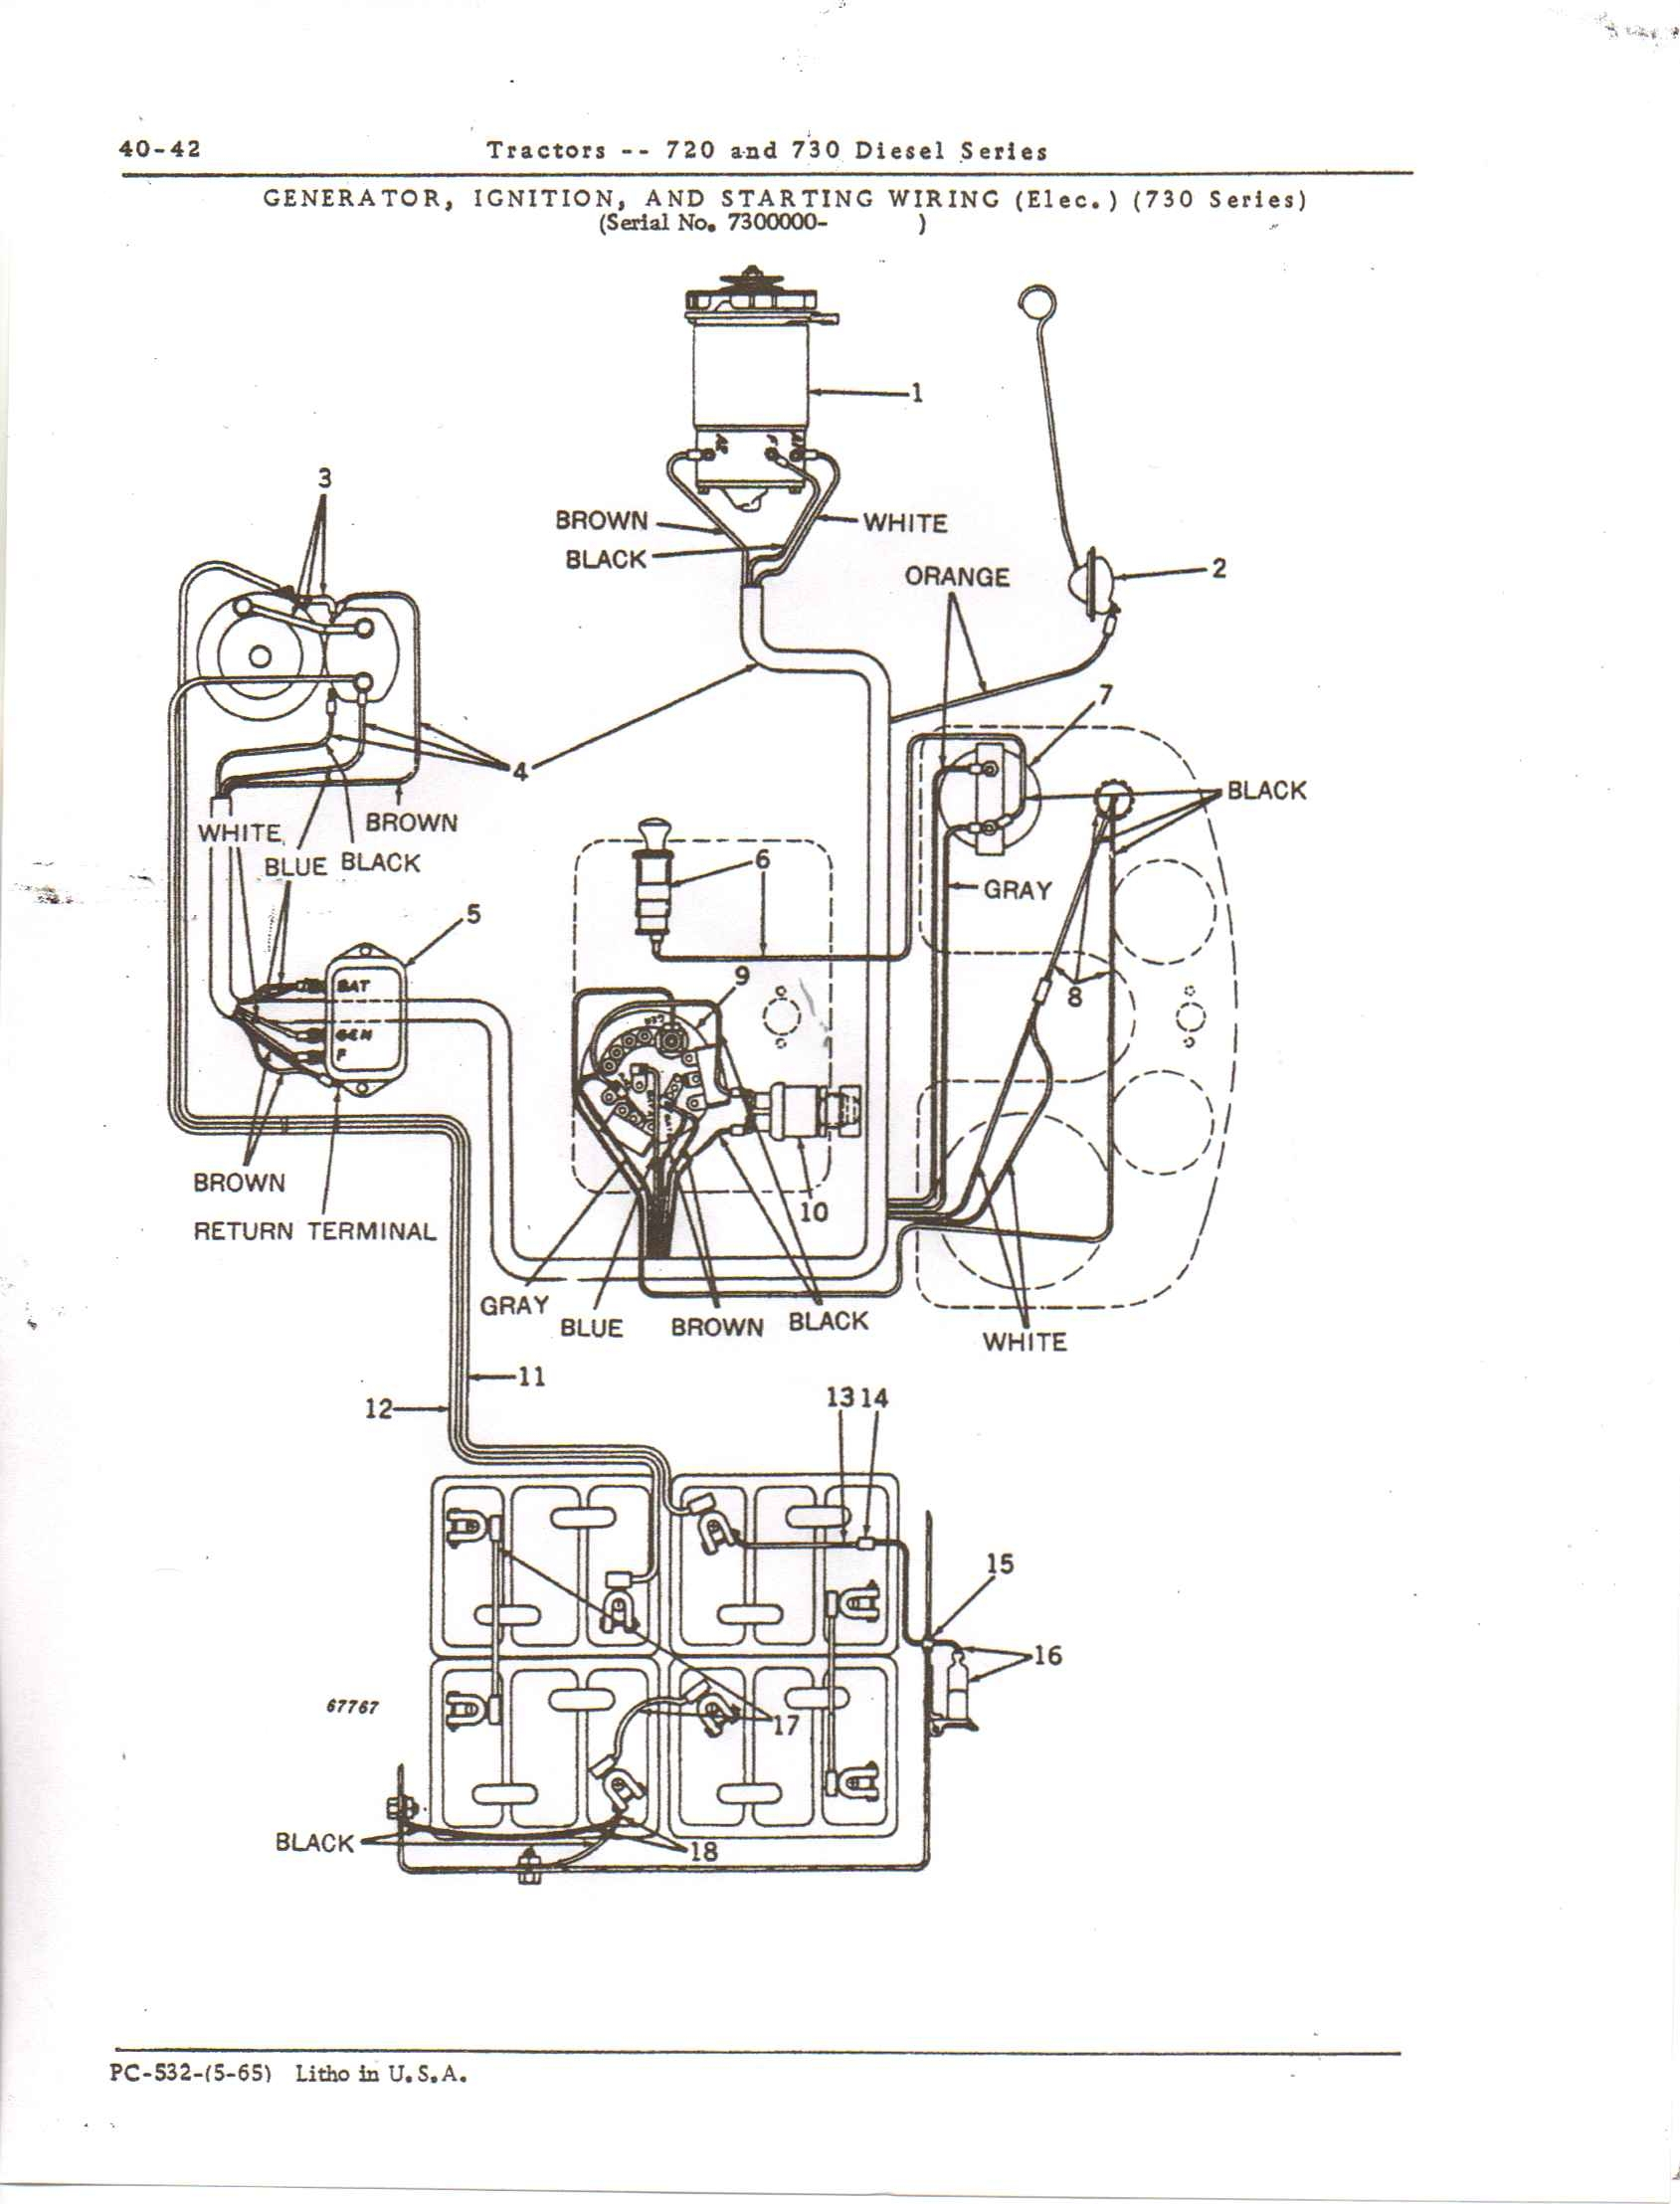 [WQZT_9871]  DIAGRAM] John Deere 830 Wiring Diagram FULL Version HD Quality Wiring  Diagram - MINIMOTOGPUSA.DELI-MULTISERVICES.FR | John Deere 1010 Wiring Schematic |  | minimotogpusa.deli-multiservices.fr